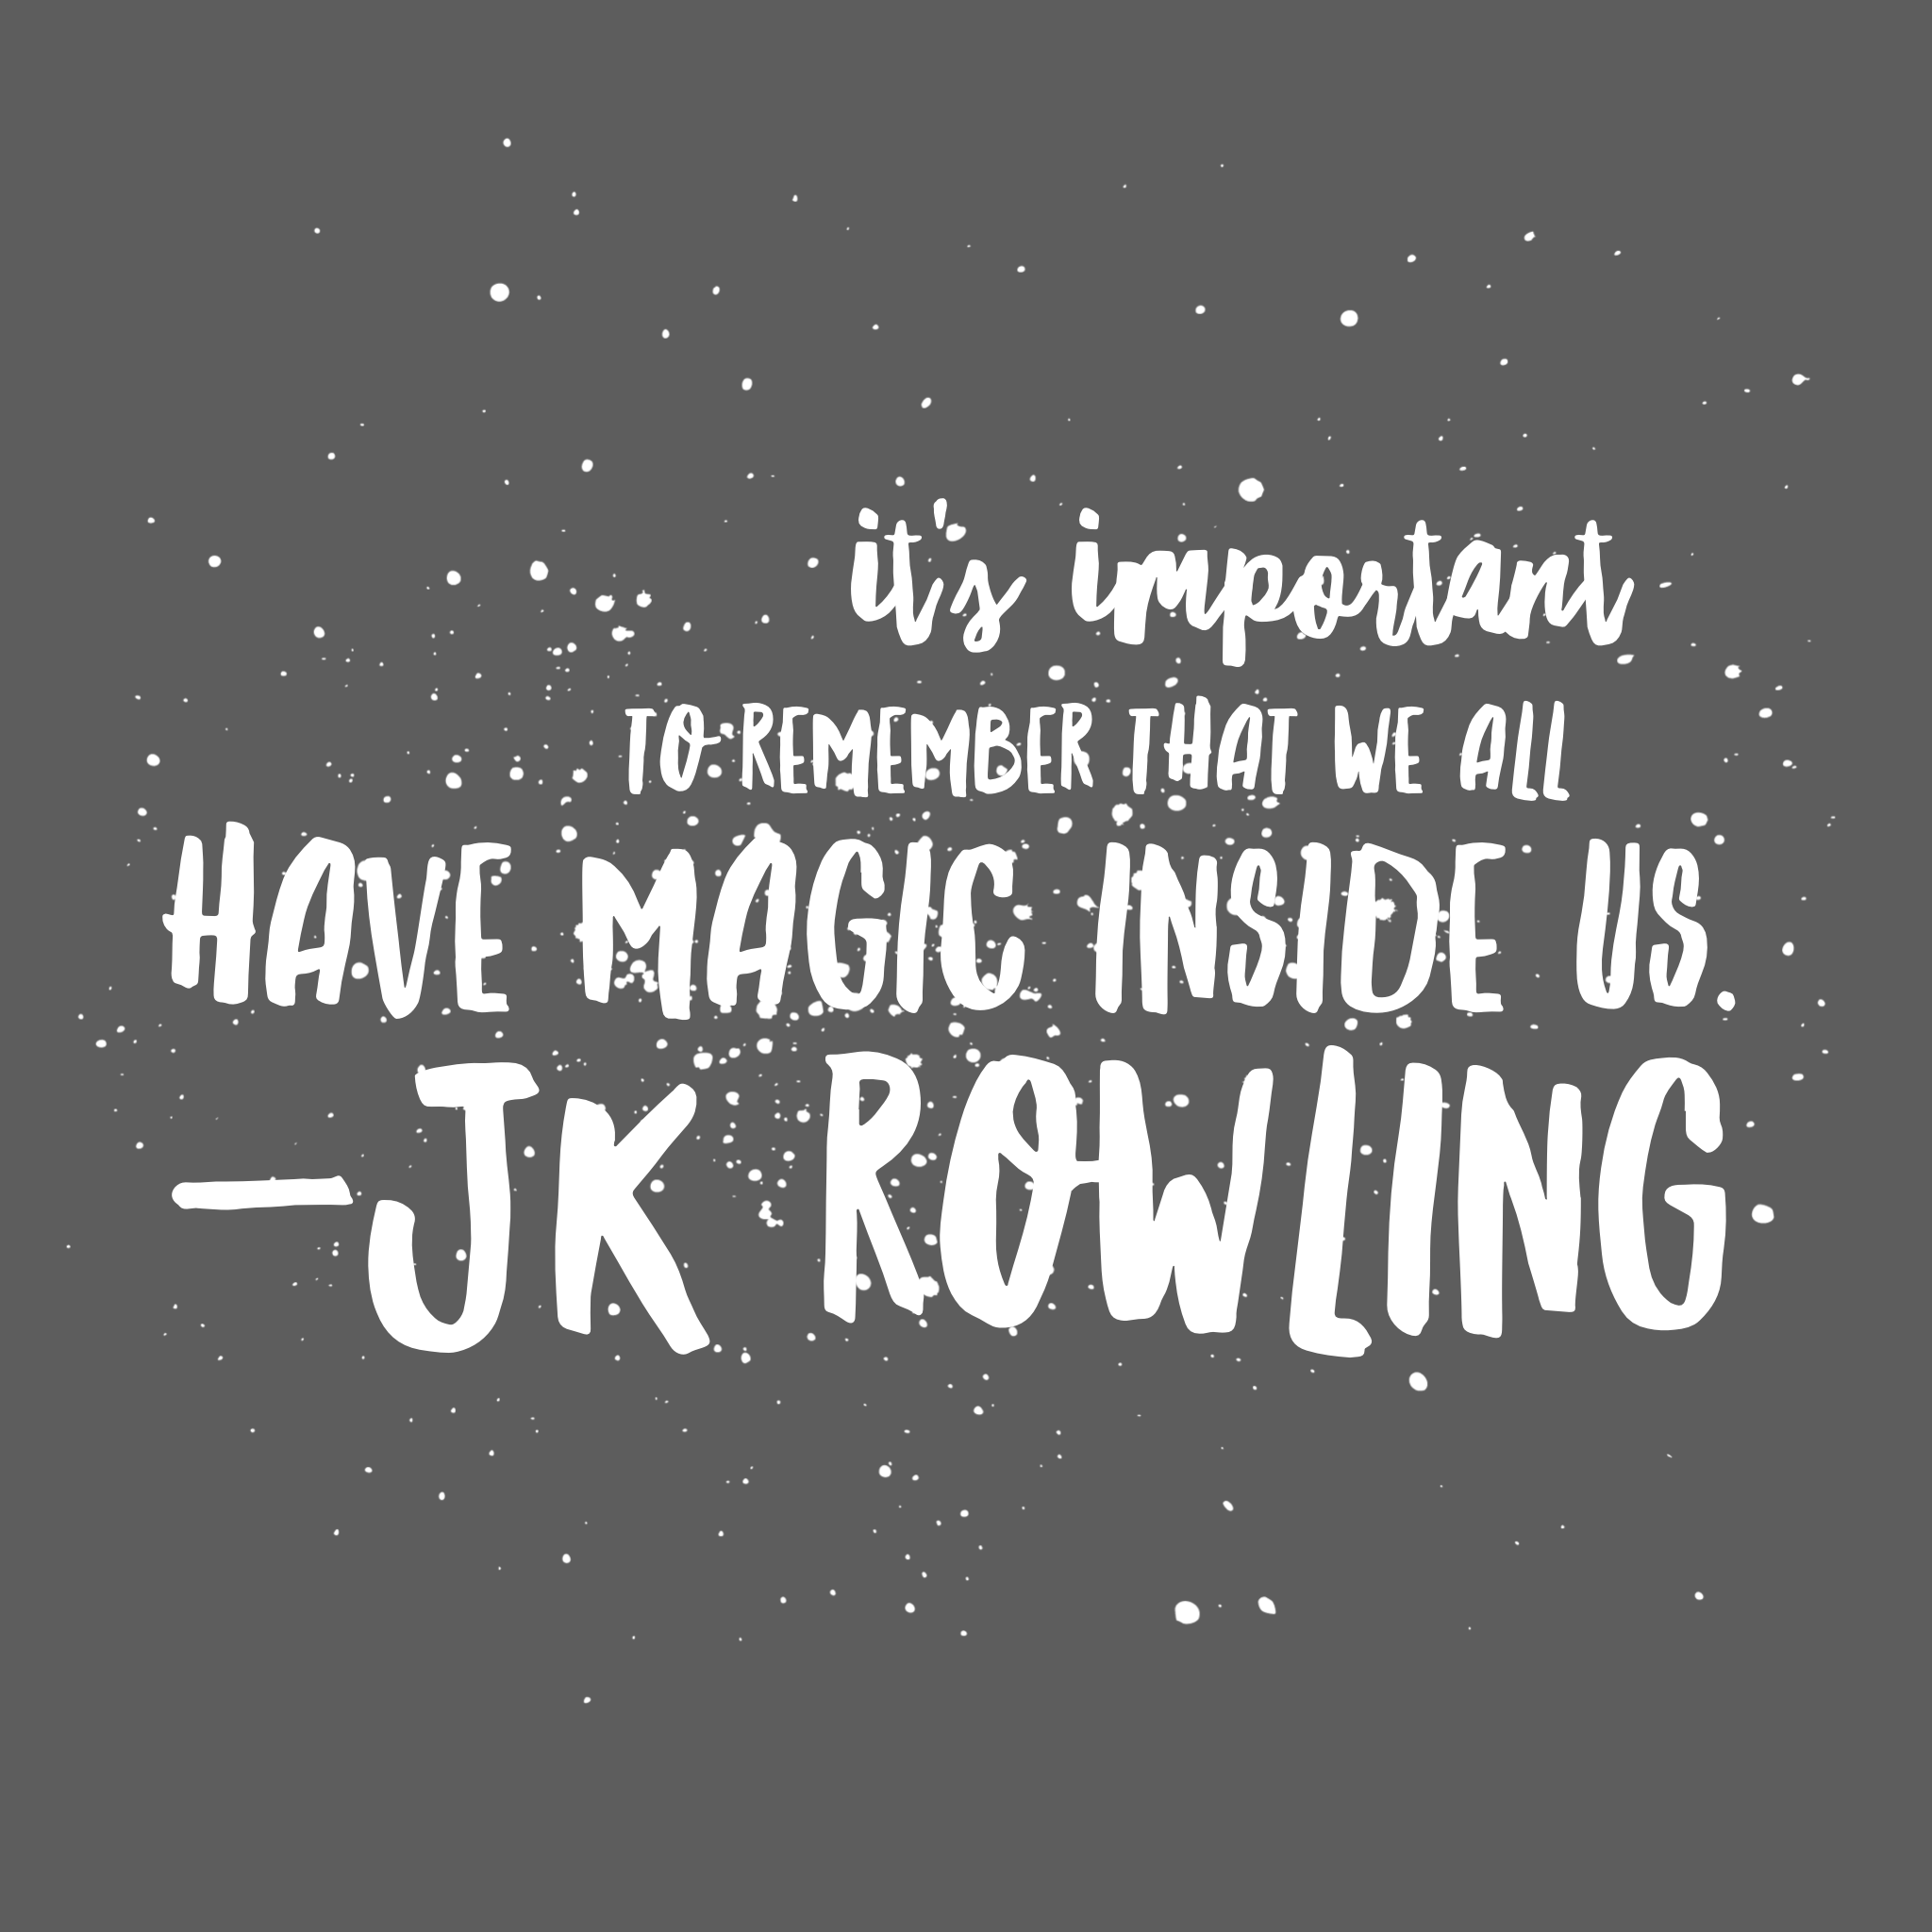 It's important to remember we all have magic inside us. JK Rowling